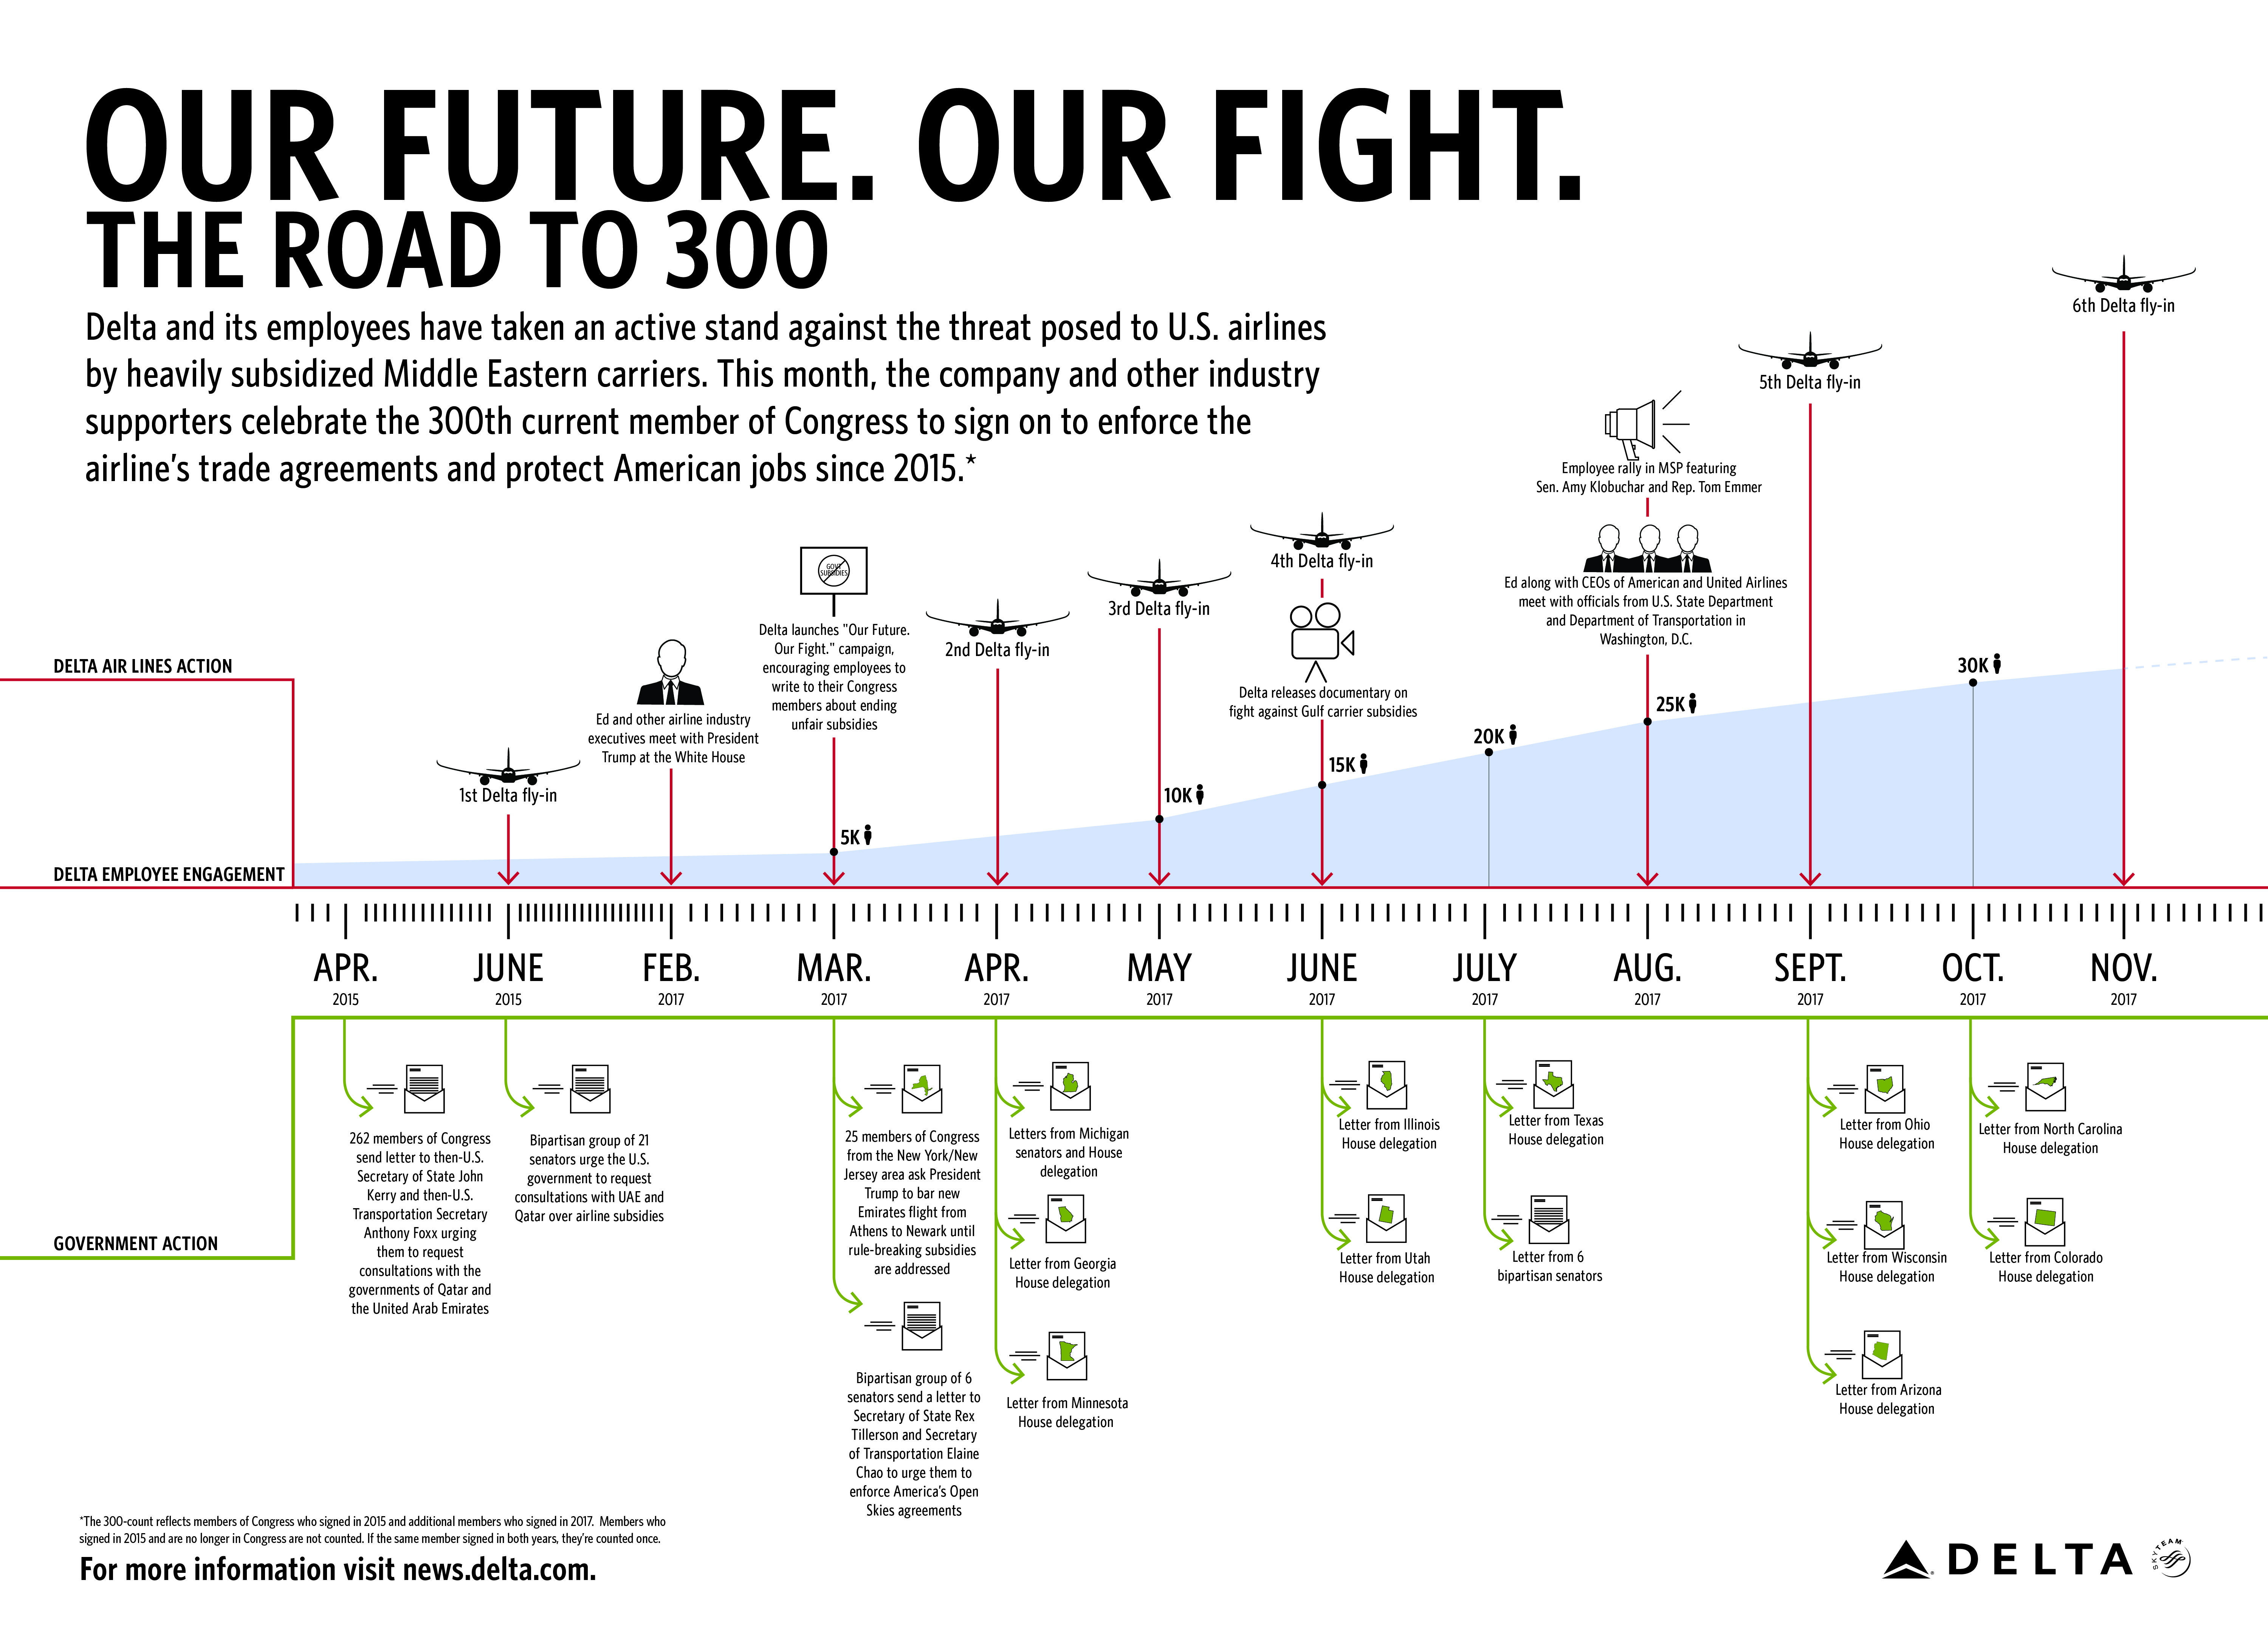 Our Future Our Fight IG